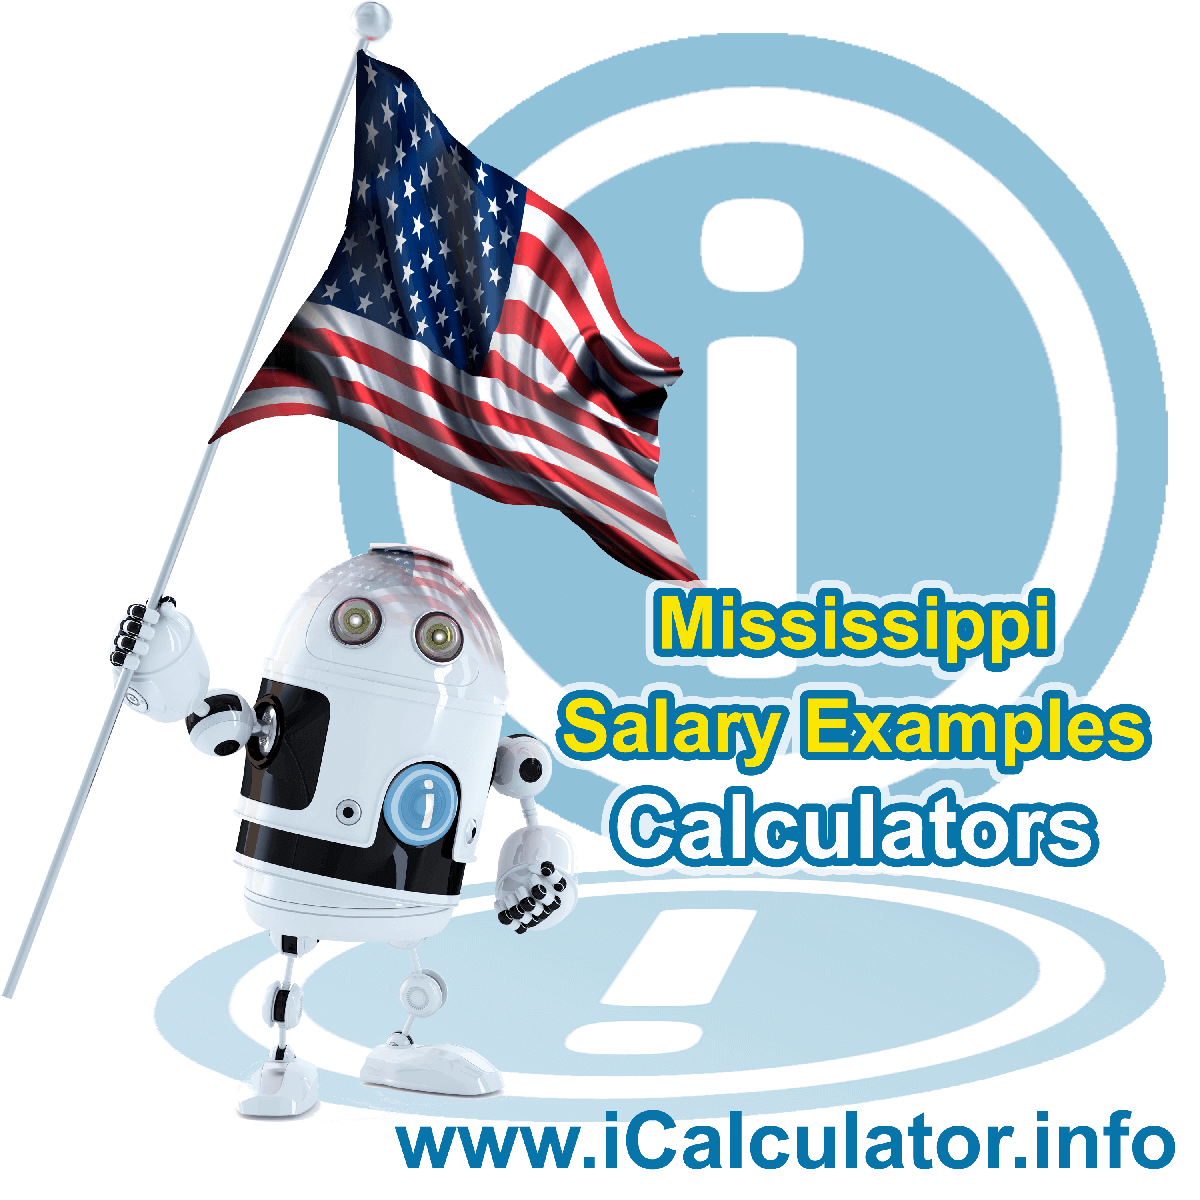 Mississippi Salary Example for $180.00 in 2020 | iCalculator | $180.00 salary example for employee and employer paying Mississippi State tincome taxes. Detailed salary after tax calculation including Mississippi State Tax, Federal State Tax, Medicare Deductions, Social Security, Capital Gains and other income tax and salary deductions complete with supporting Mississippi state tax tables